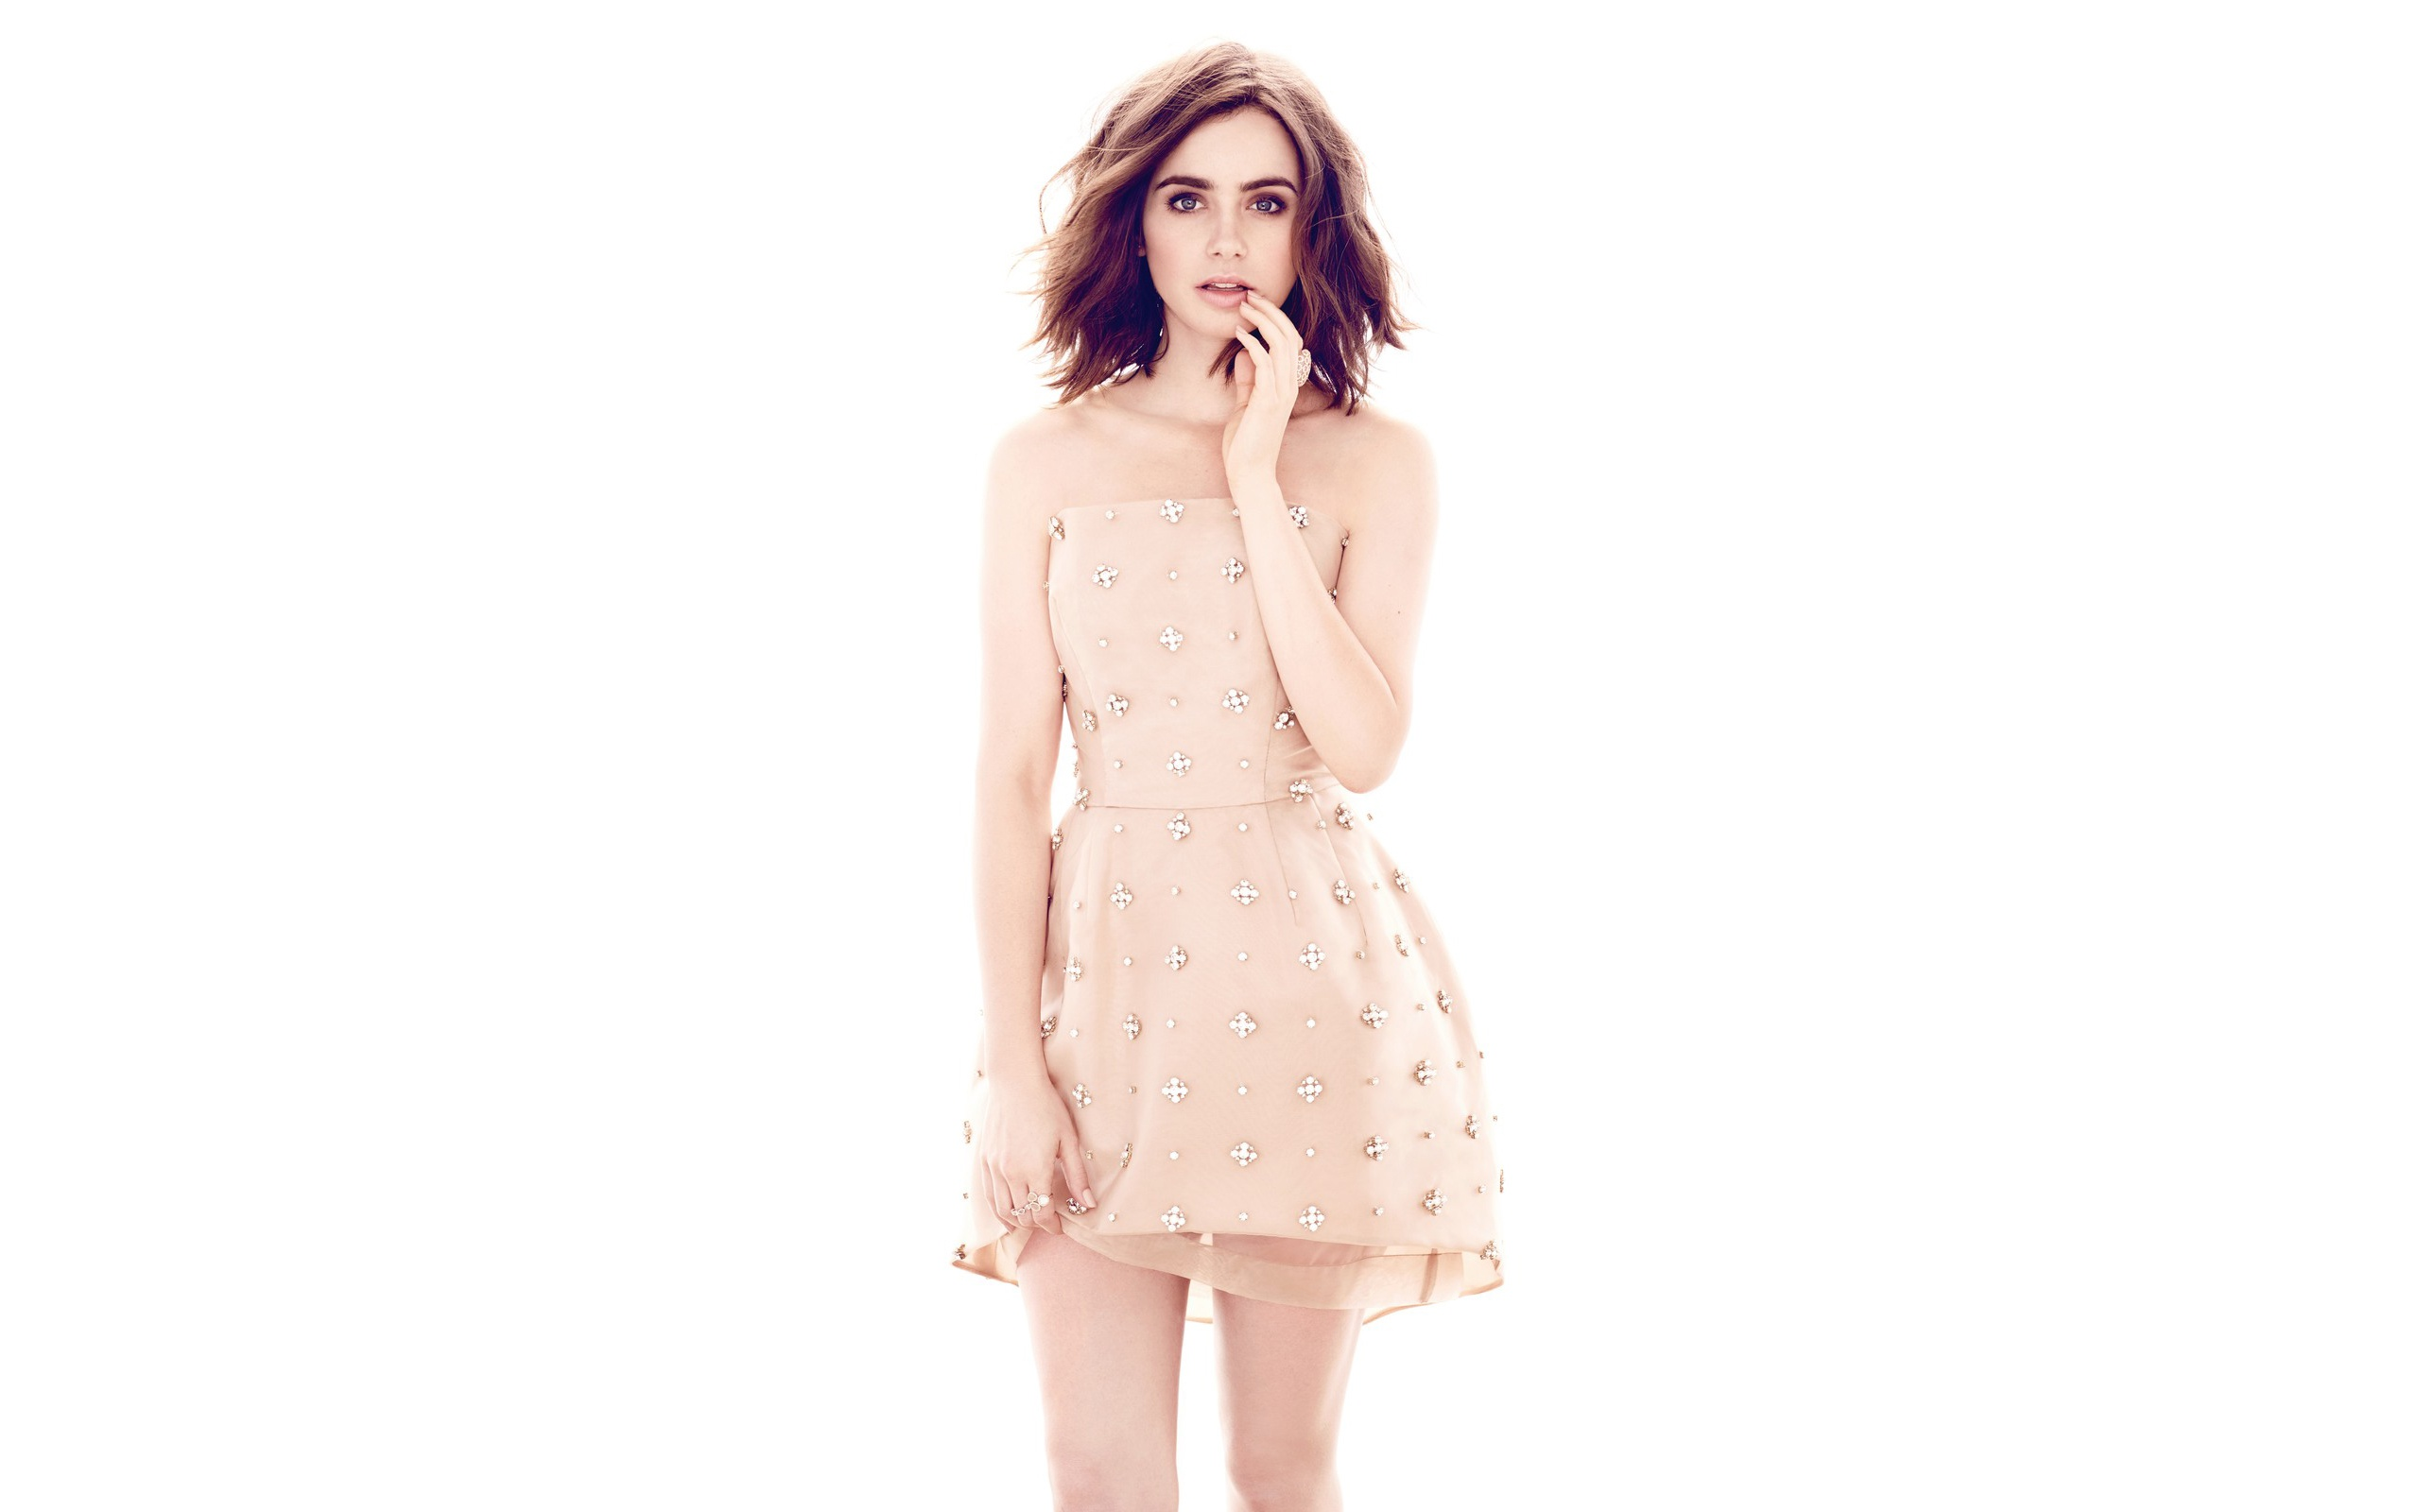 lily collins 2017, hd celebrities, 4k wallpapers, images